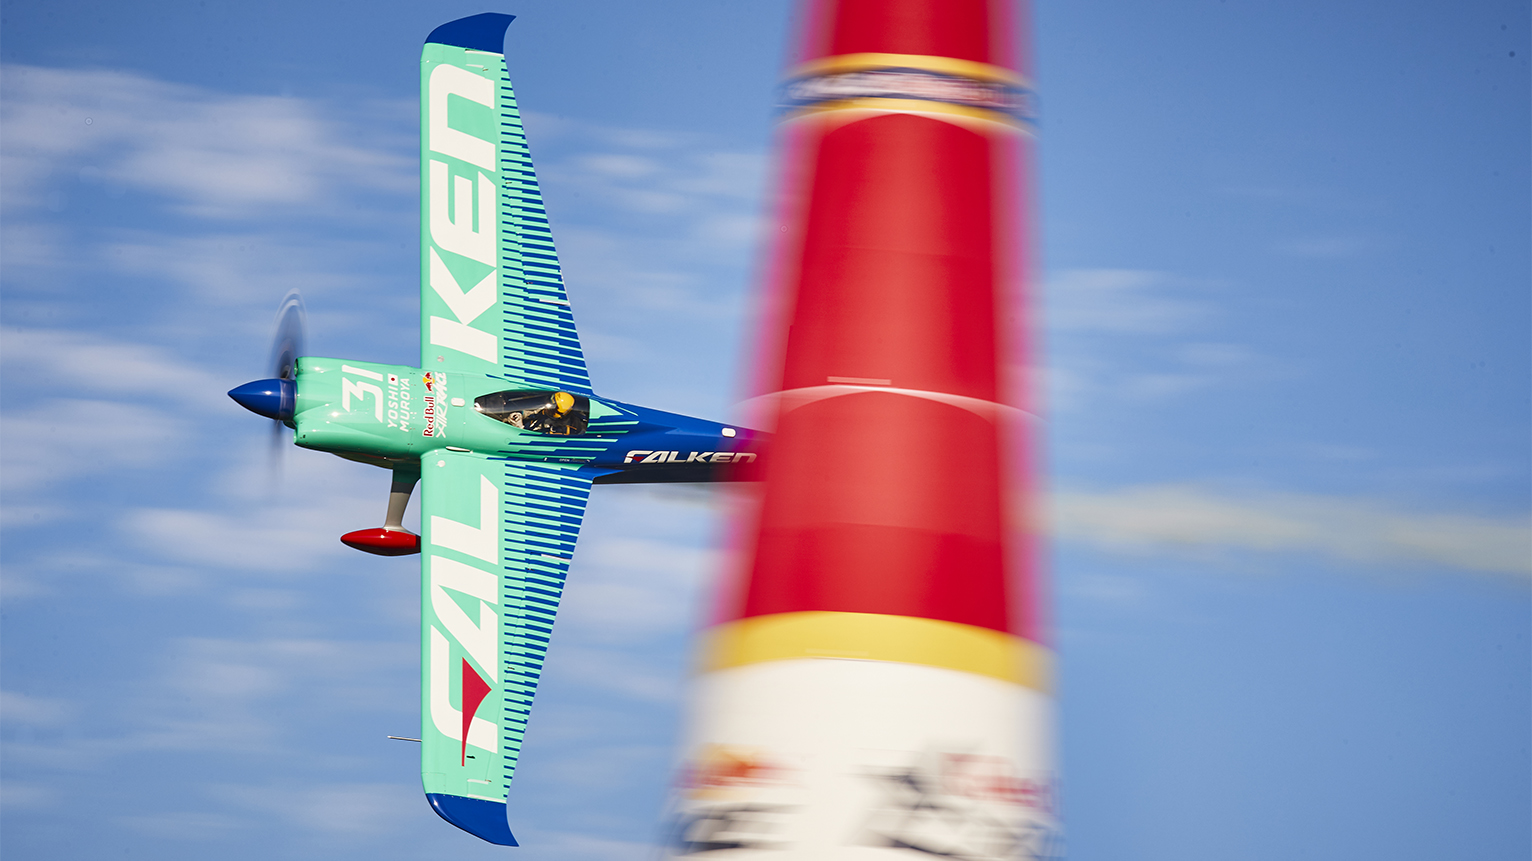 Yoshihide Muroya of Japan performs during qualifying day at the eighth round of the Red Bull Air Race World Championship at Indianapolis Motor Speedway. Photo by Andreas Langreiter / Red Bull Content Pool.